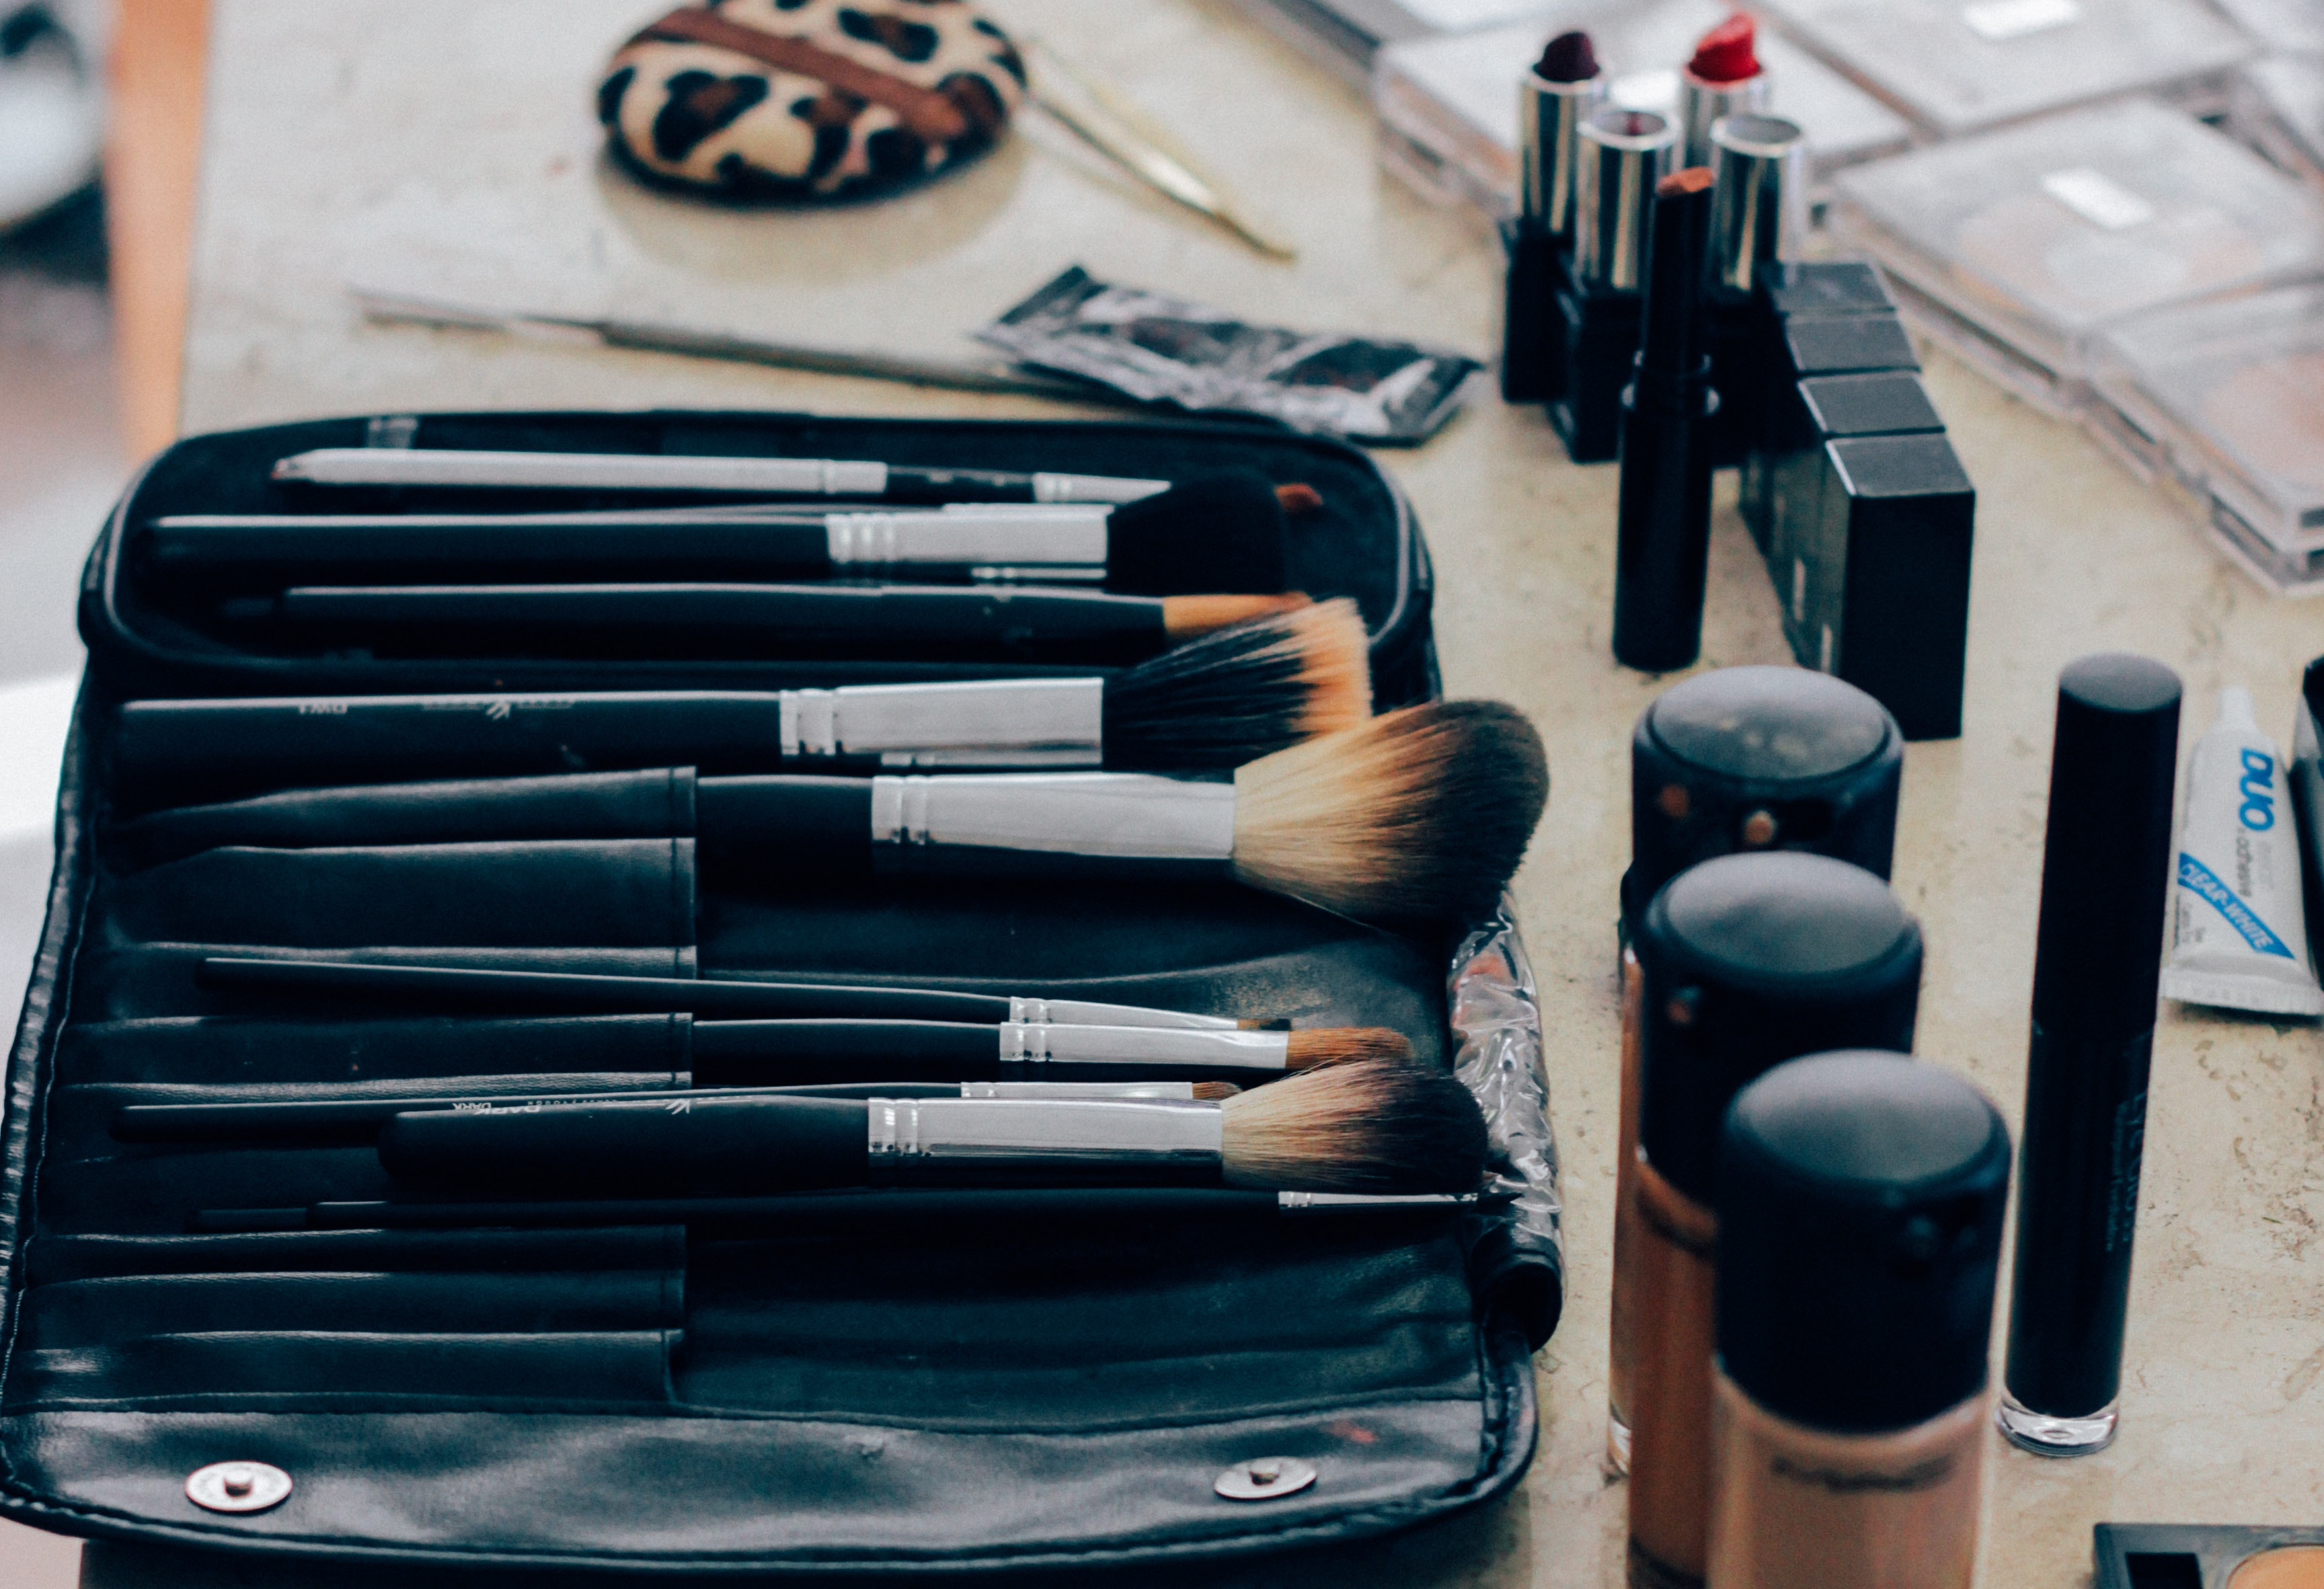 Skip pricey makeup setting powder and use the $9 Mehron Makeup Setting Powder that pros swear by. (Image: Manu Camargo)